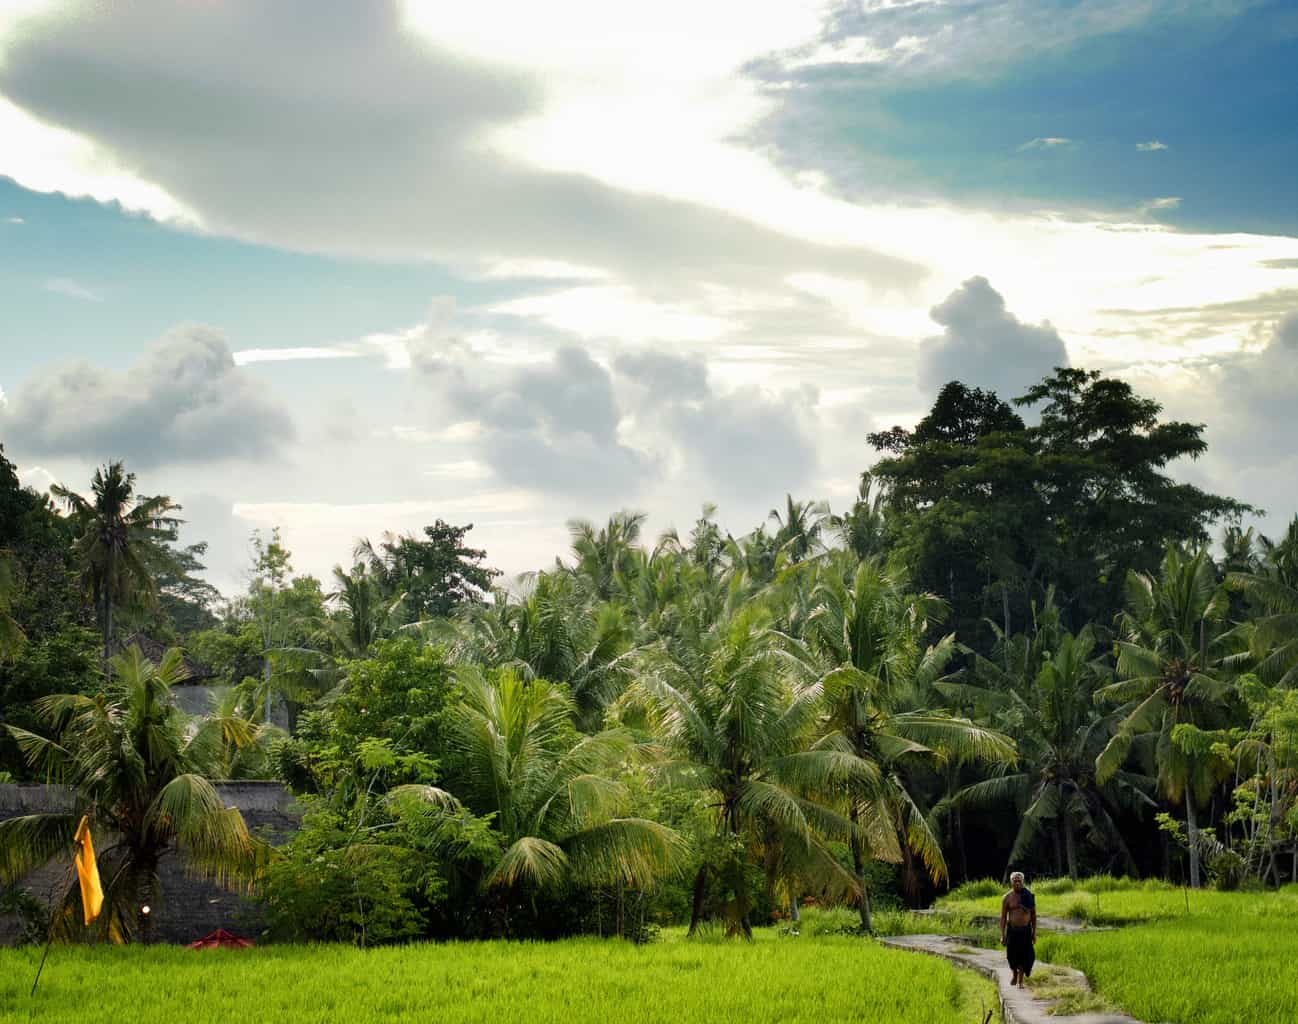 Bali is know for their beautiful and stunning views.